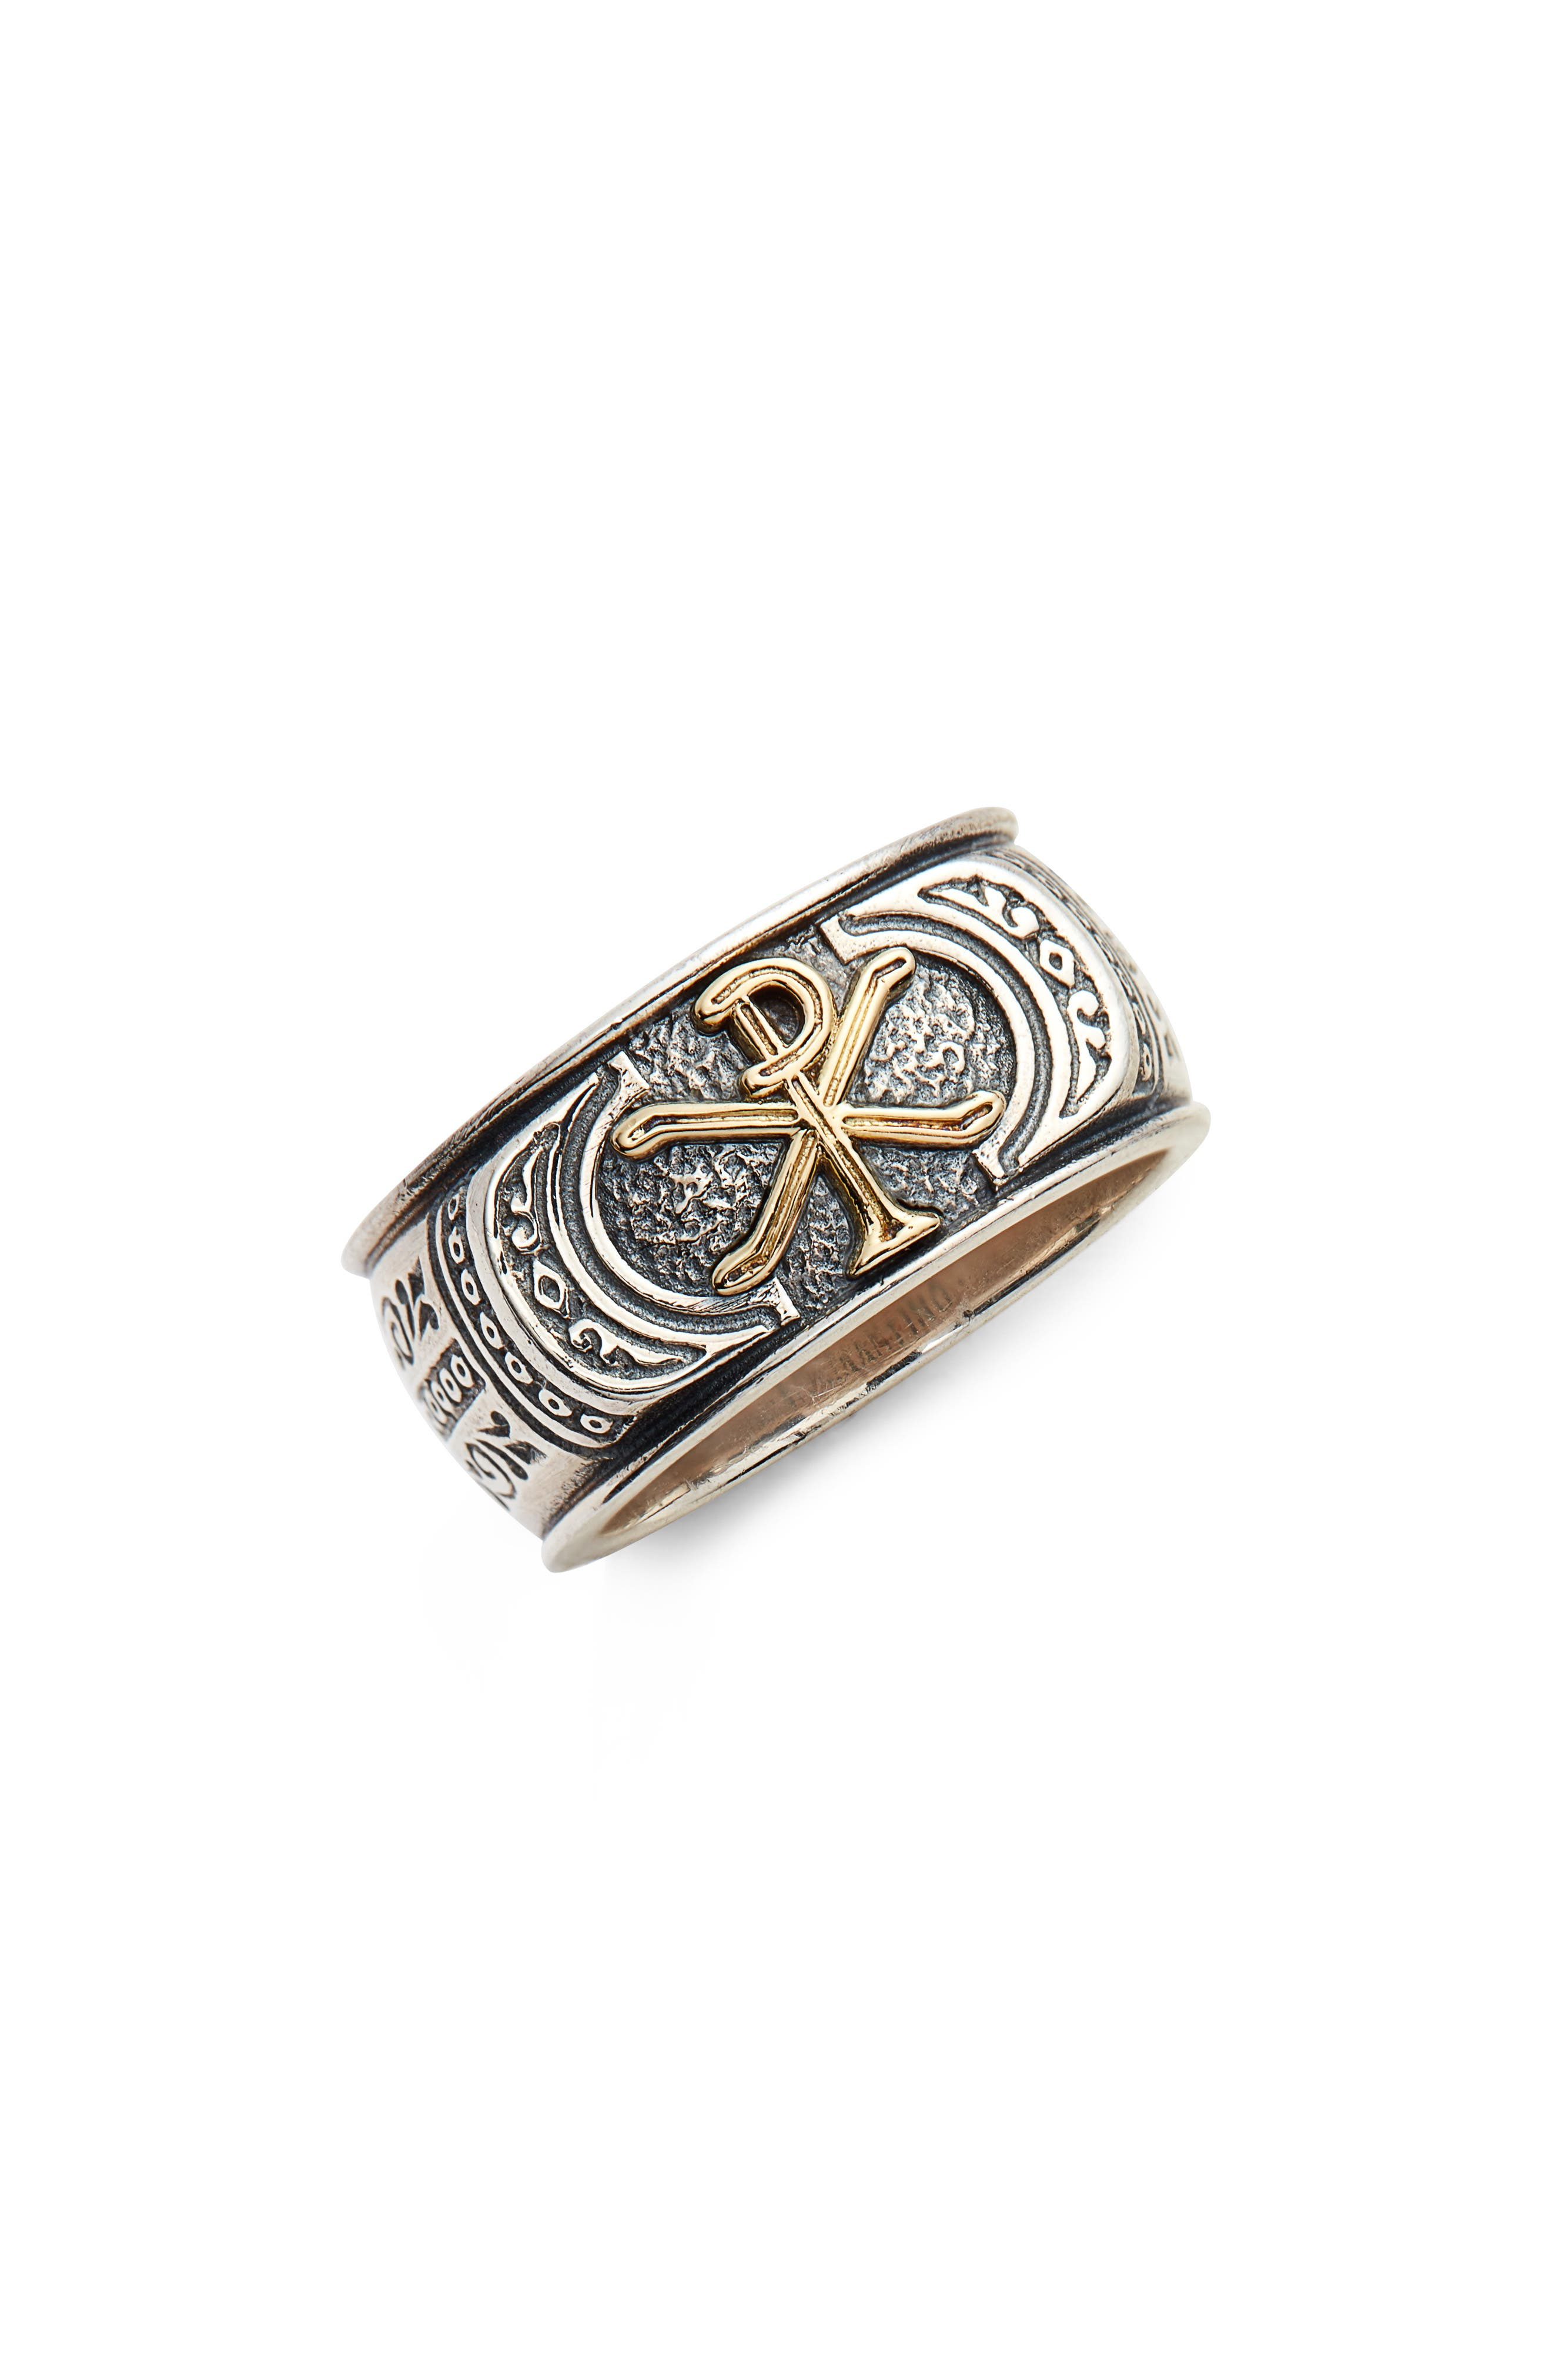 Stavros Band Ring,                         Main,                         color, Silver/ Gold